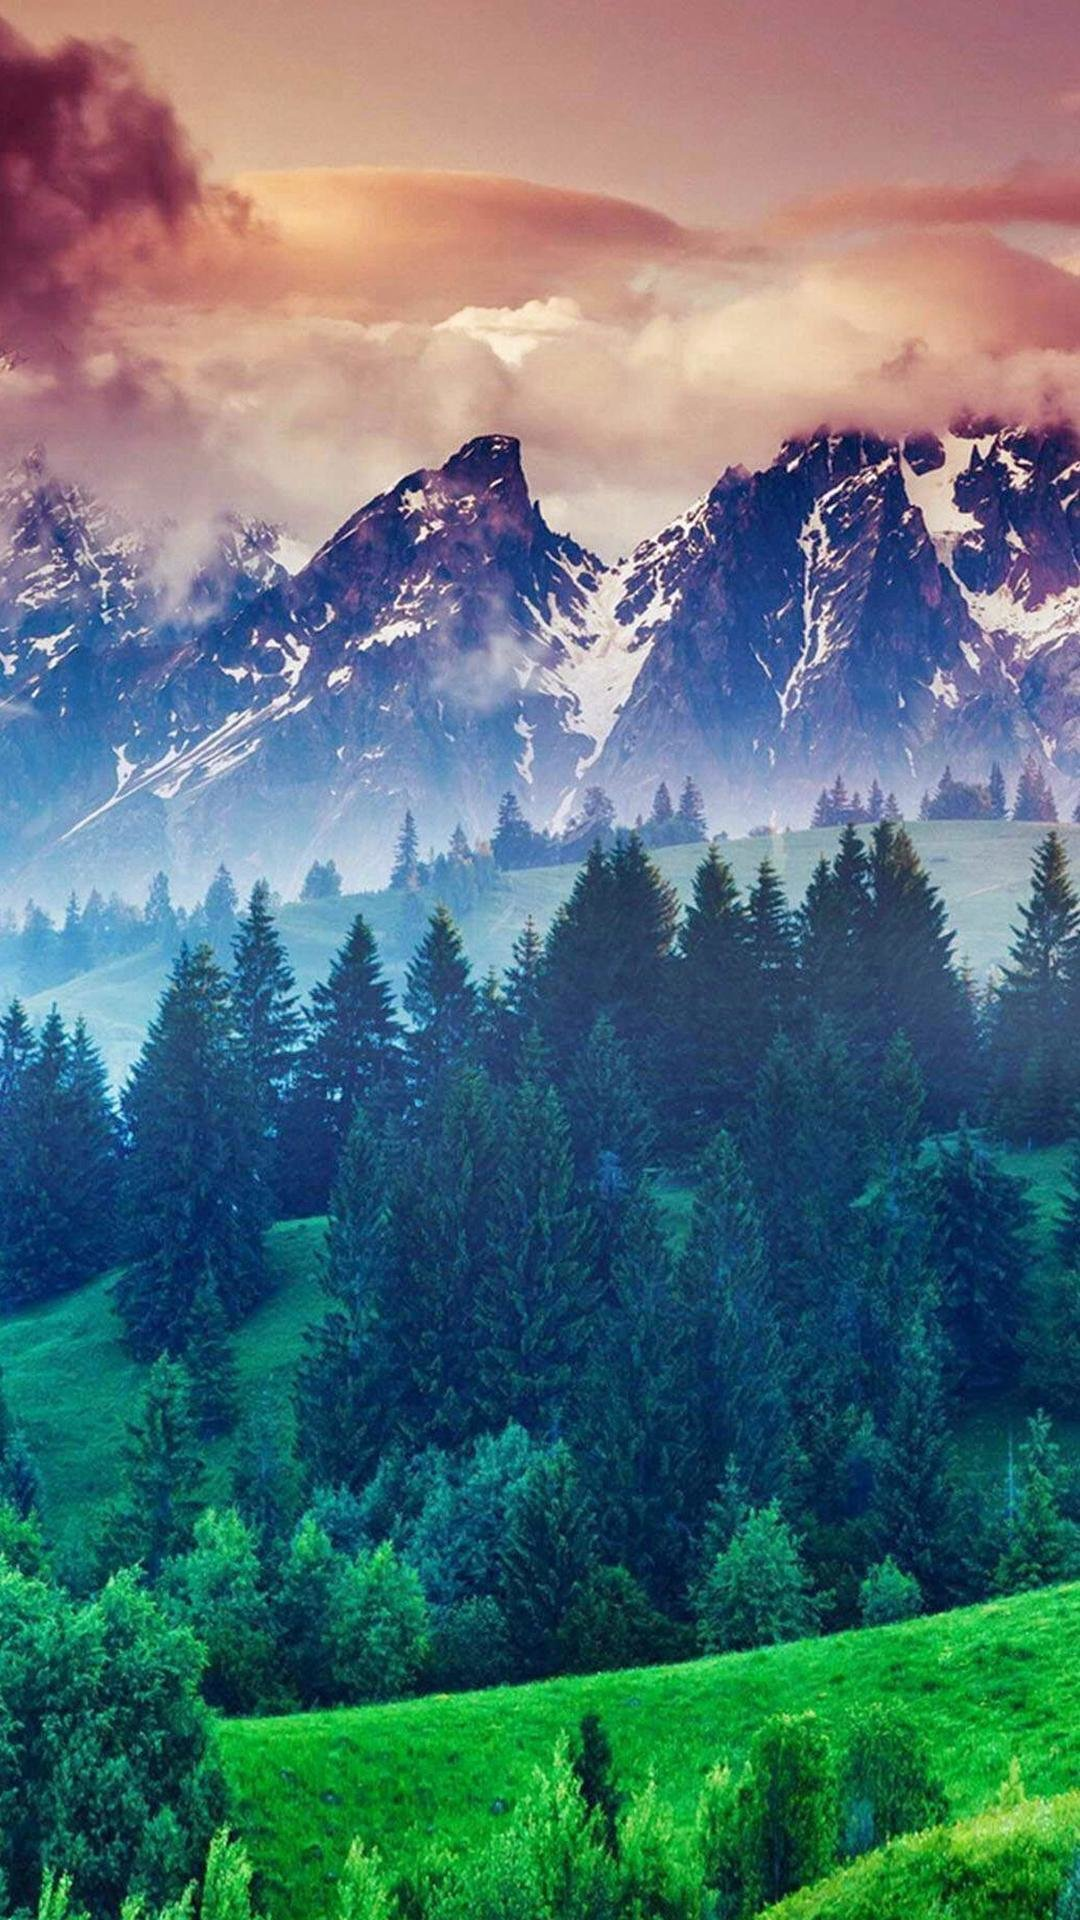 Free Download 15 Best Nature Wallpapers In 4k And Full Hd